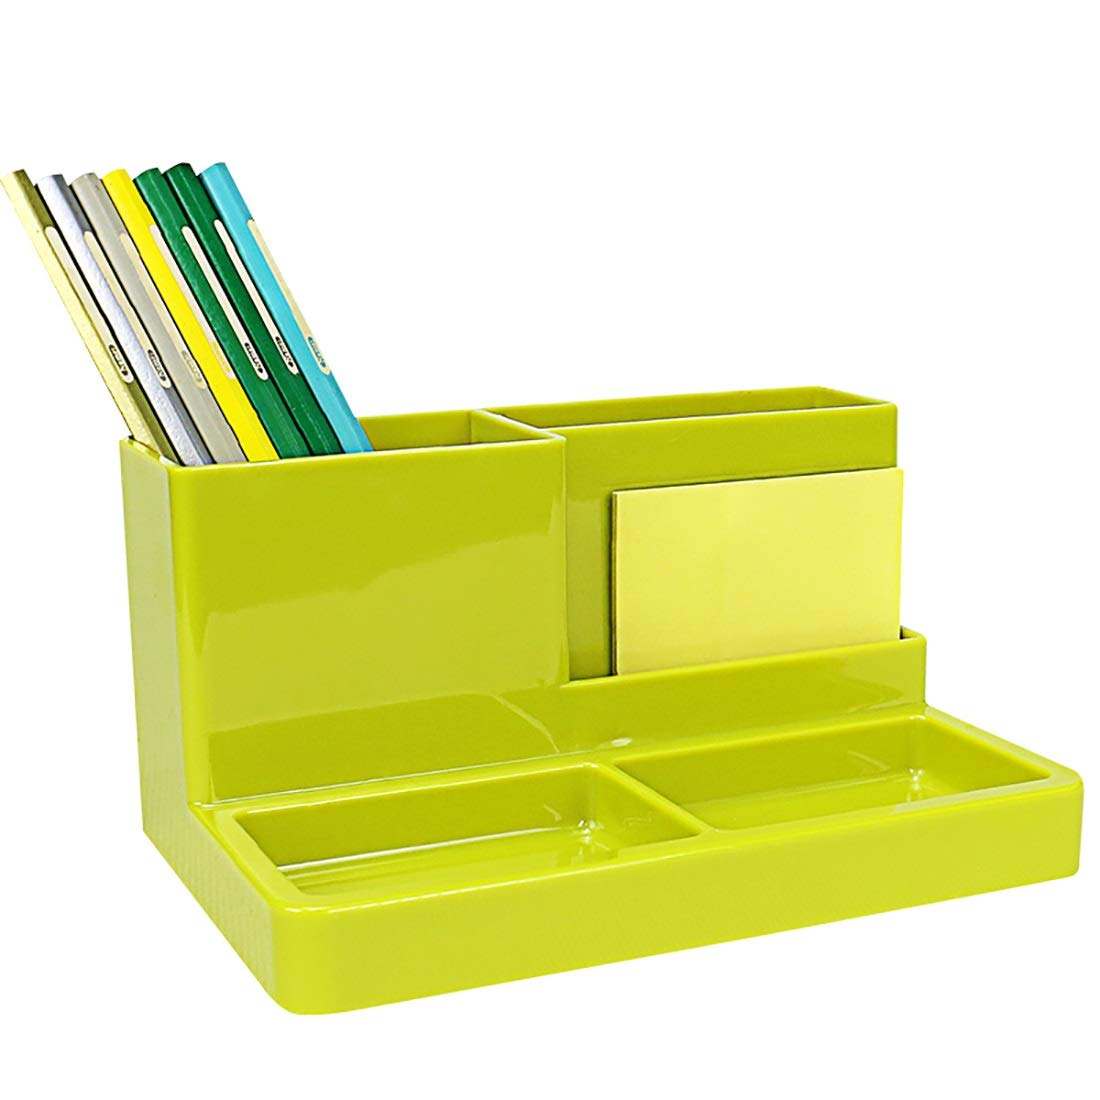 YCYG File Shelf Wooden - File Holder Racks, File Organi Desk Organiser, Fabric Desk Shelf for Office Supplies - Stationery Organiser - Large Box for Pens, Sticky Notes and Paper Clips (Color : Brown) by YCYG